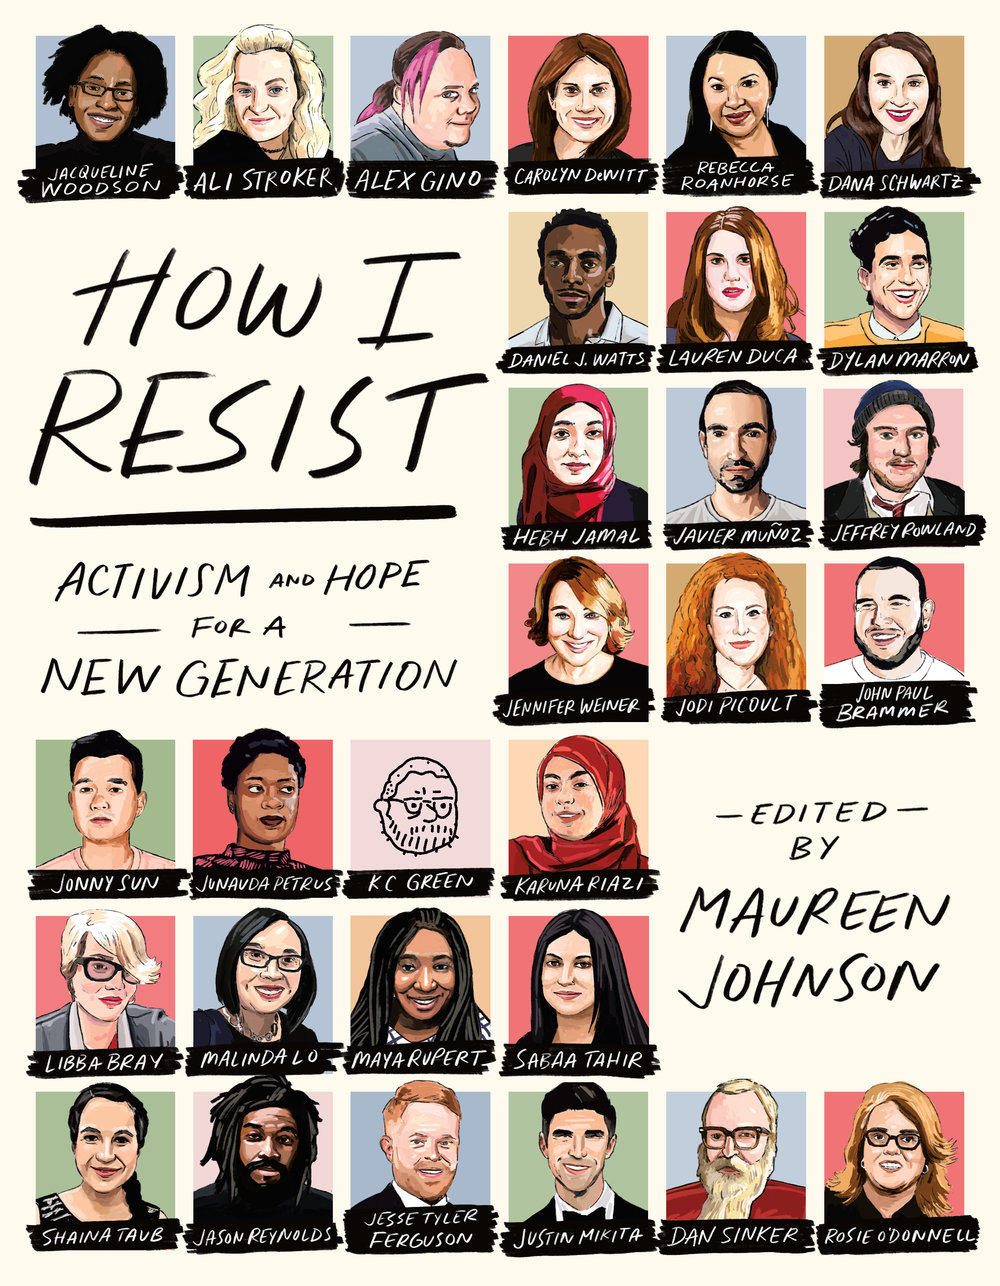 How I Resist: Activism and Hope for a New Generation - An all-star collection of essays about activism and hope, edited by bestselling YA author Maureen Johnson.Now, more than ever, young people are motivated to make a difference in a world they're bound to inherit. They're ready to stand up and be heard - but with much to shout about, where they do they begin? What can I do? How can I help?